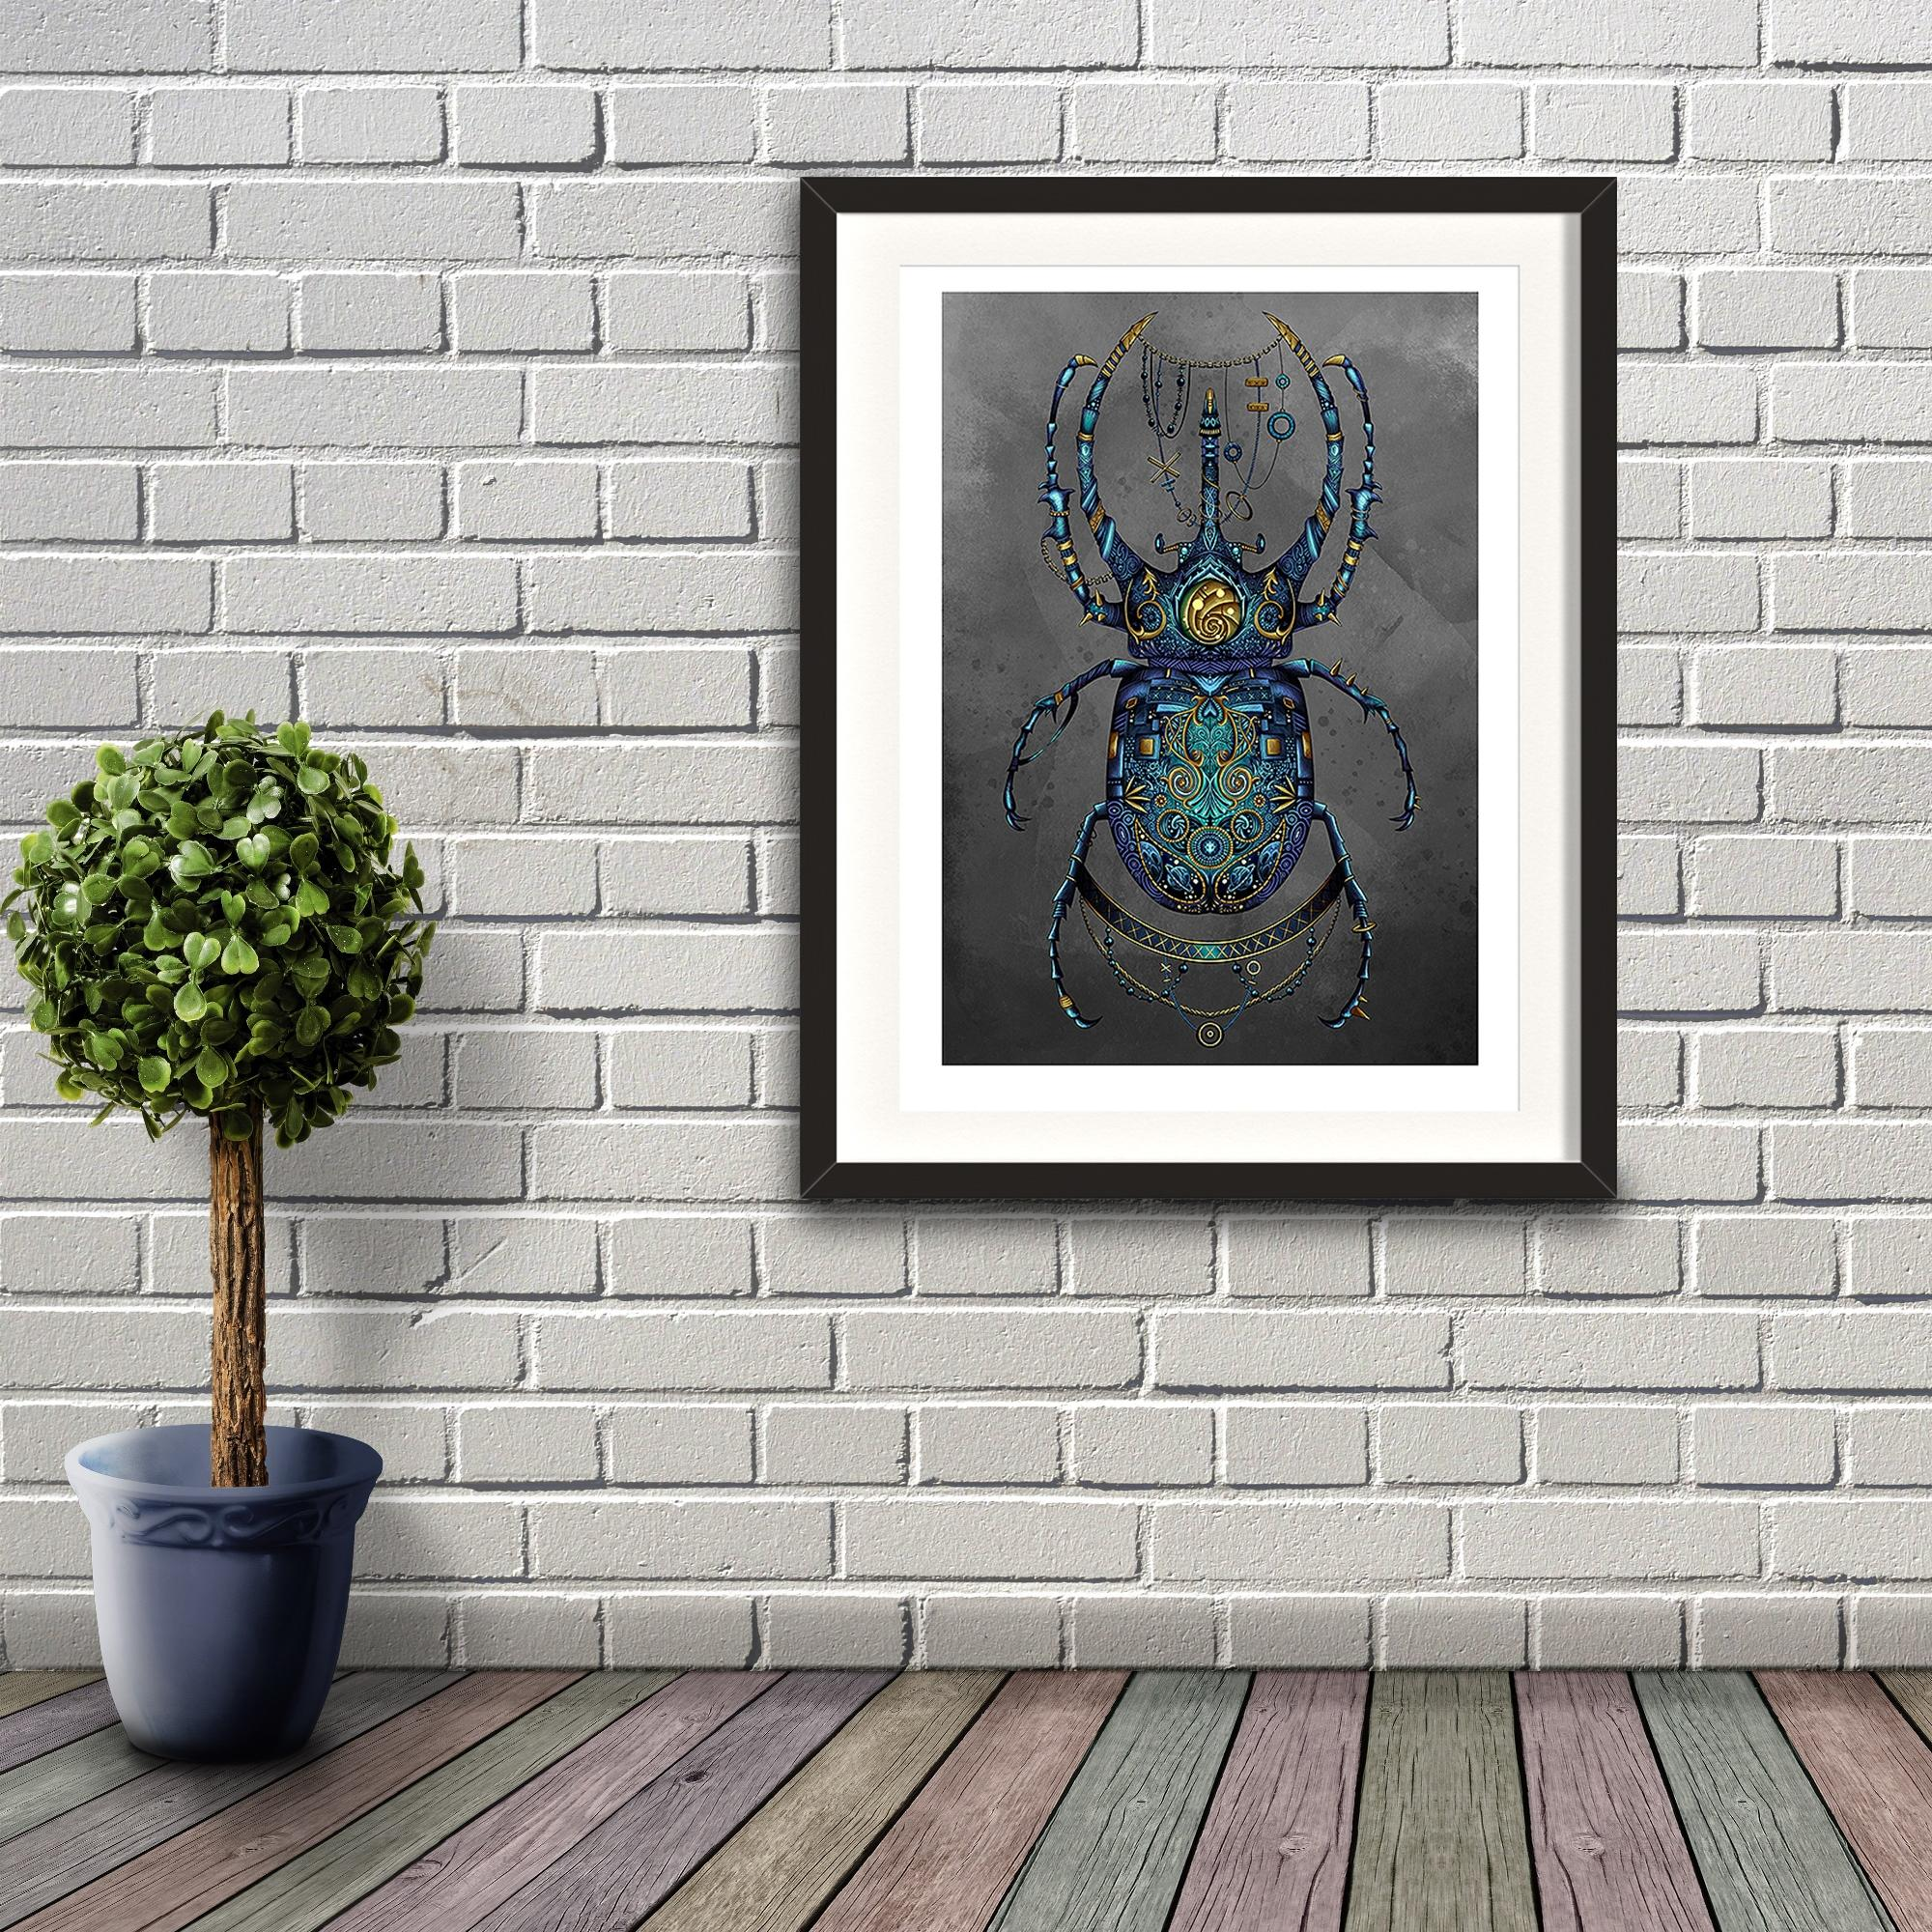 A digital painting by Lily Bourne printed on eco fine art paper titled Beetle showing a jewel encrusted beetle coloured blue and turquoise with grey background in a steam punk style. Print shown hanging on a brick wall.